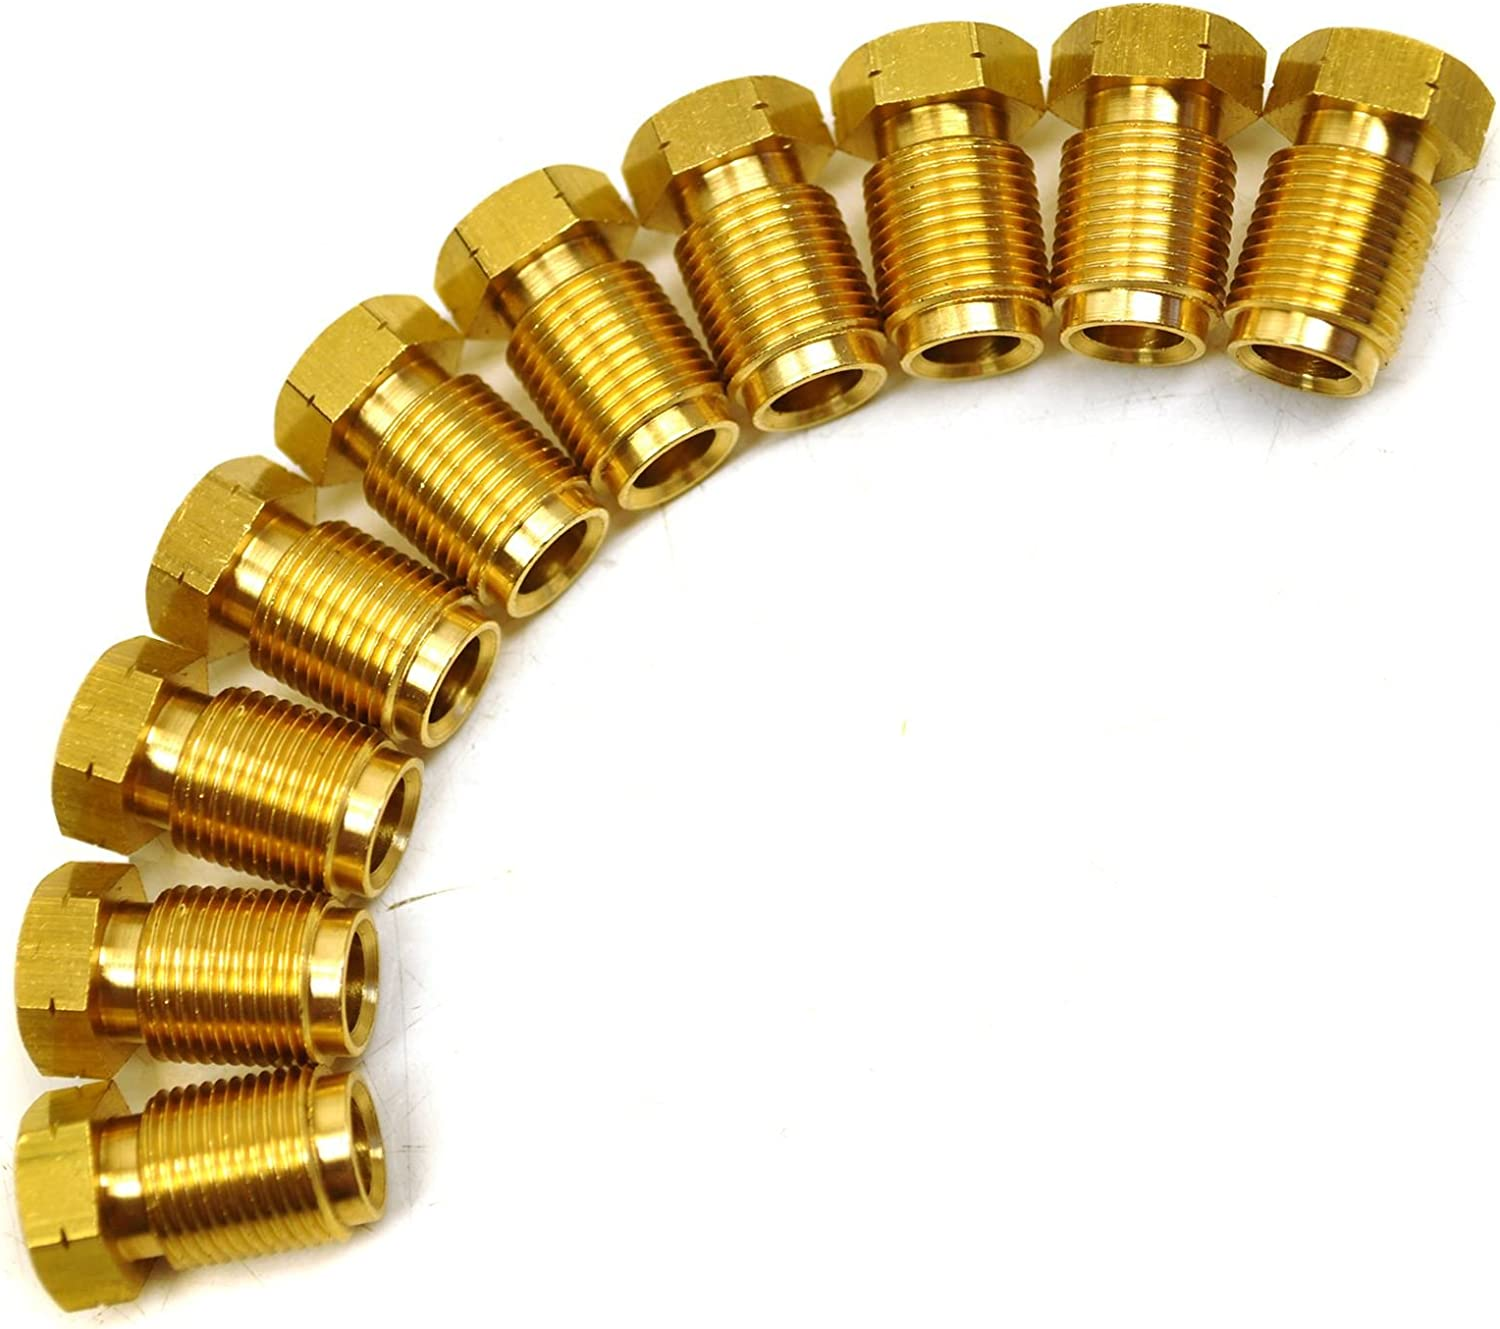 """Brass Brake Pipe Fittings M12 x 1mm Male 10 PACK for 1//4/"""" Pipe FL22"""